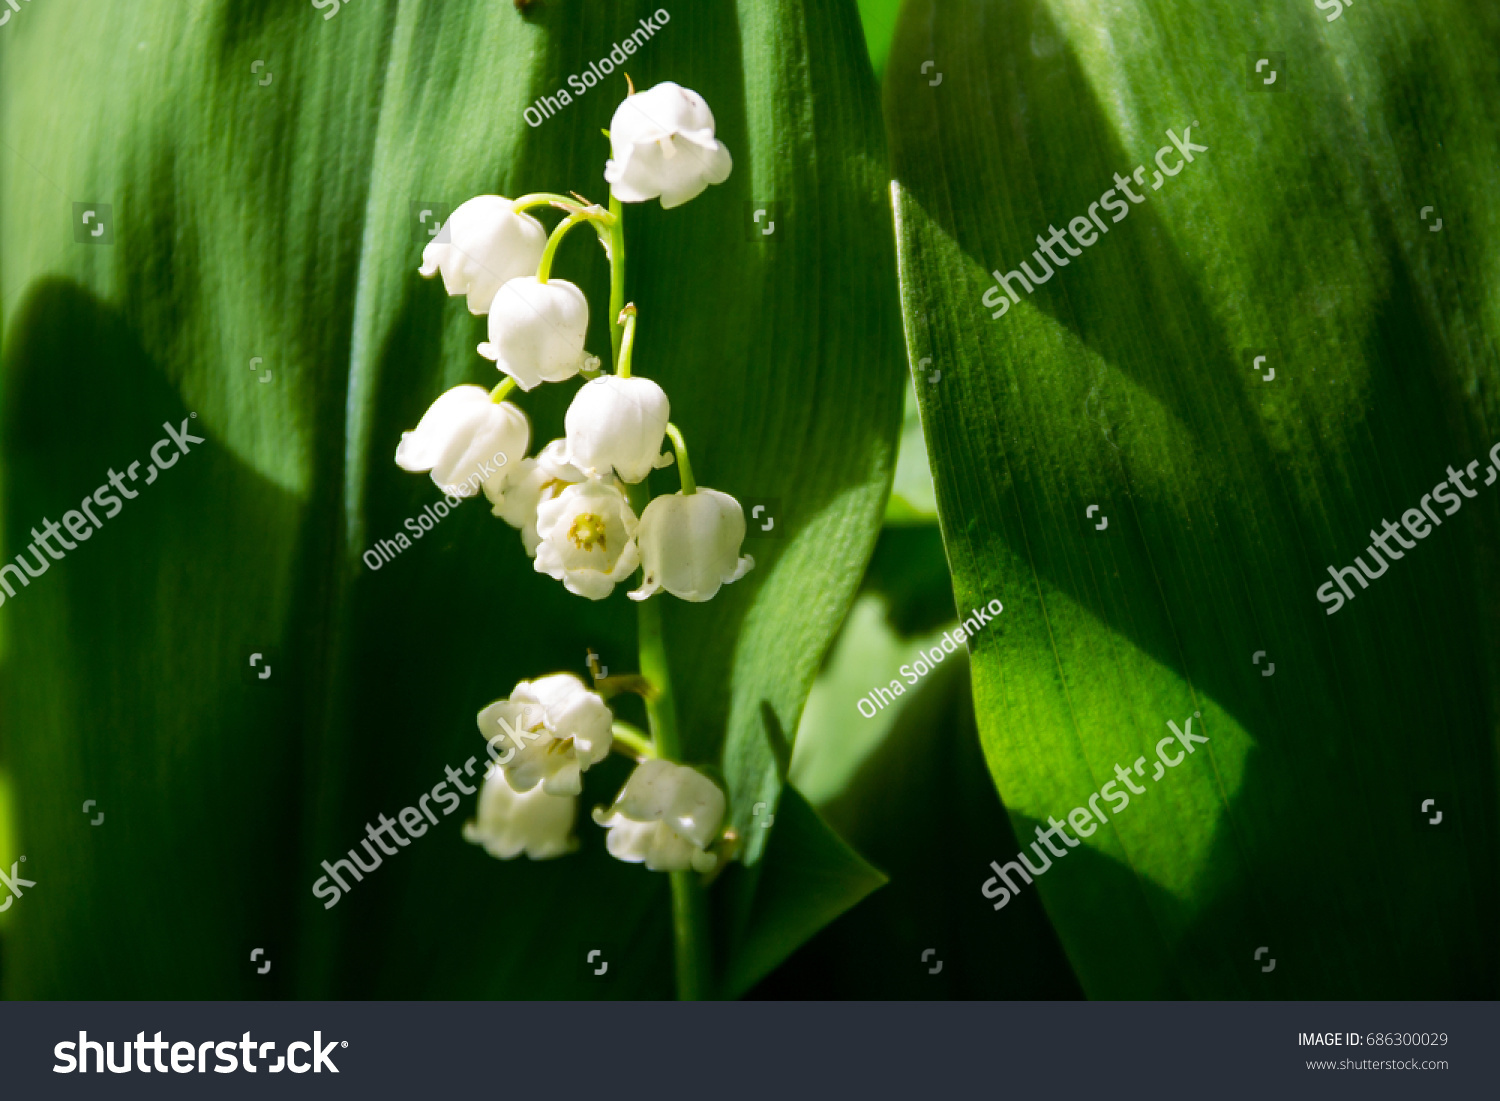 Lily of the valley convallaria majalis white flowers in garden on id 686300029 izmirmasajfo